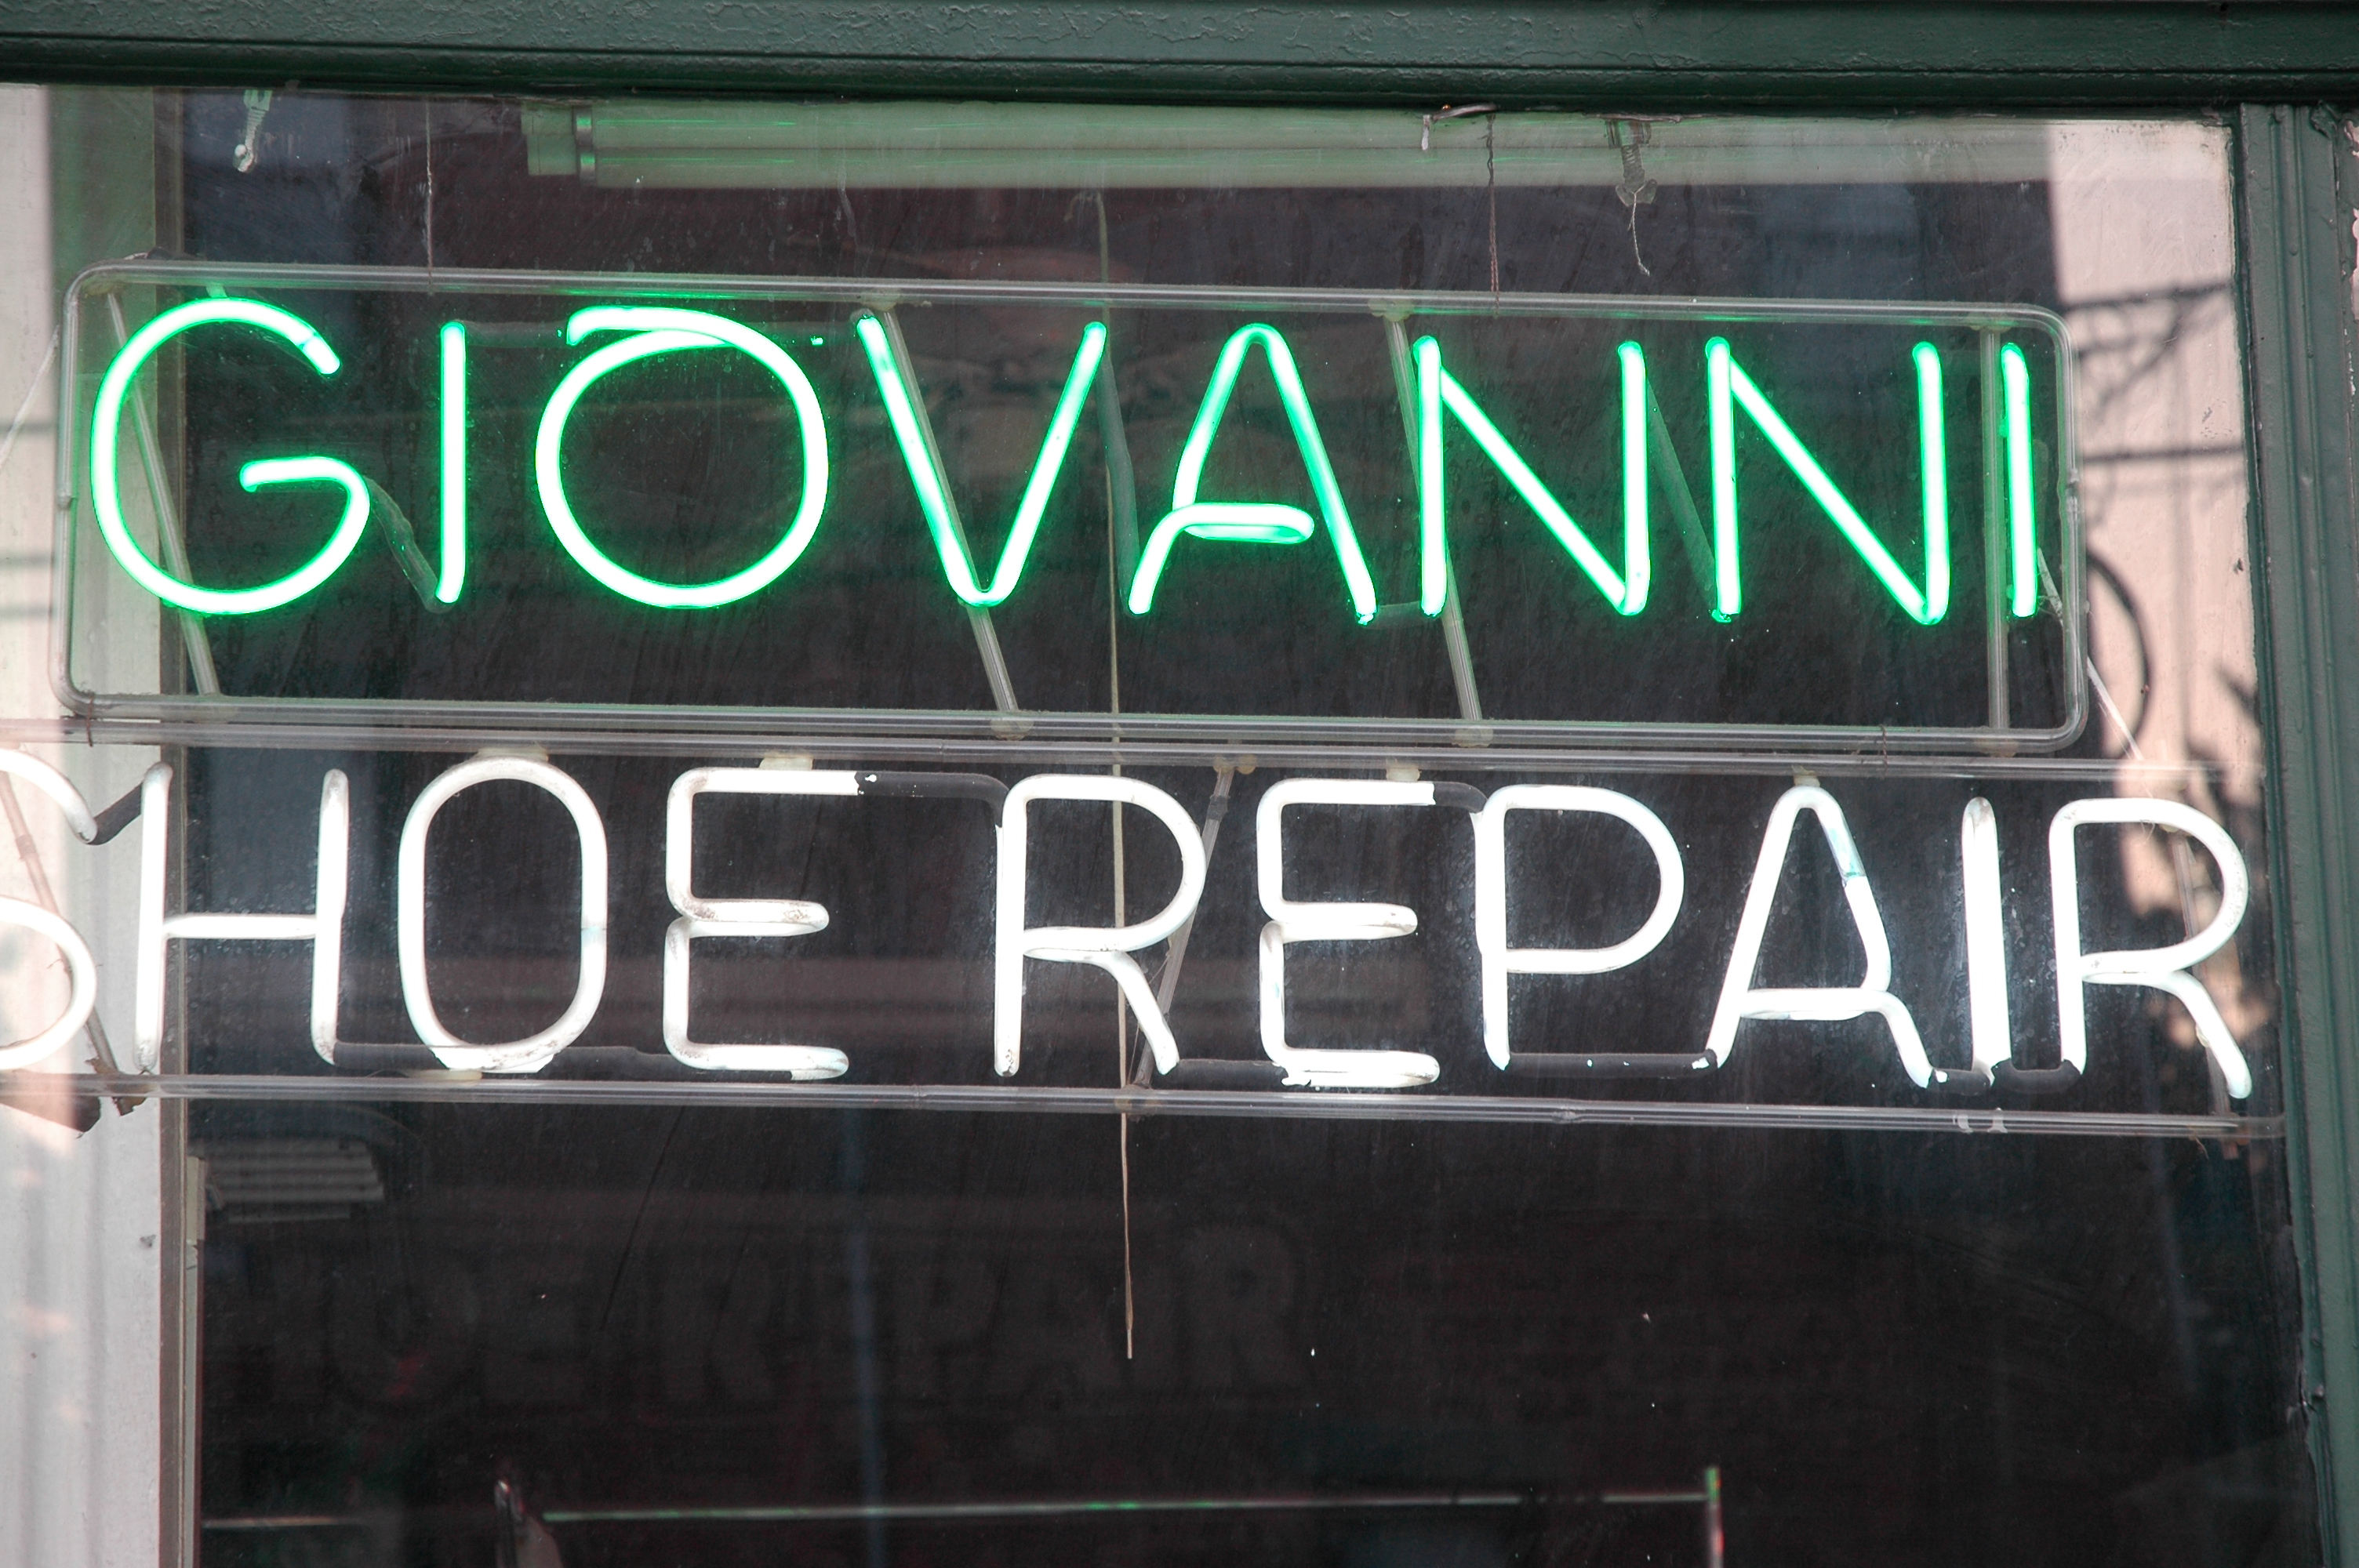 Giovanni Hoe Repair